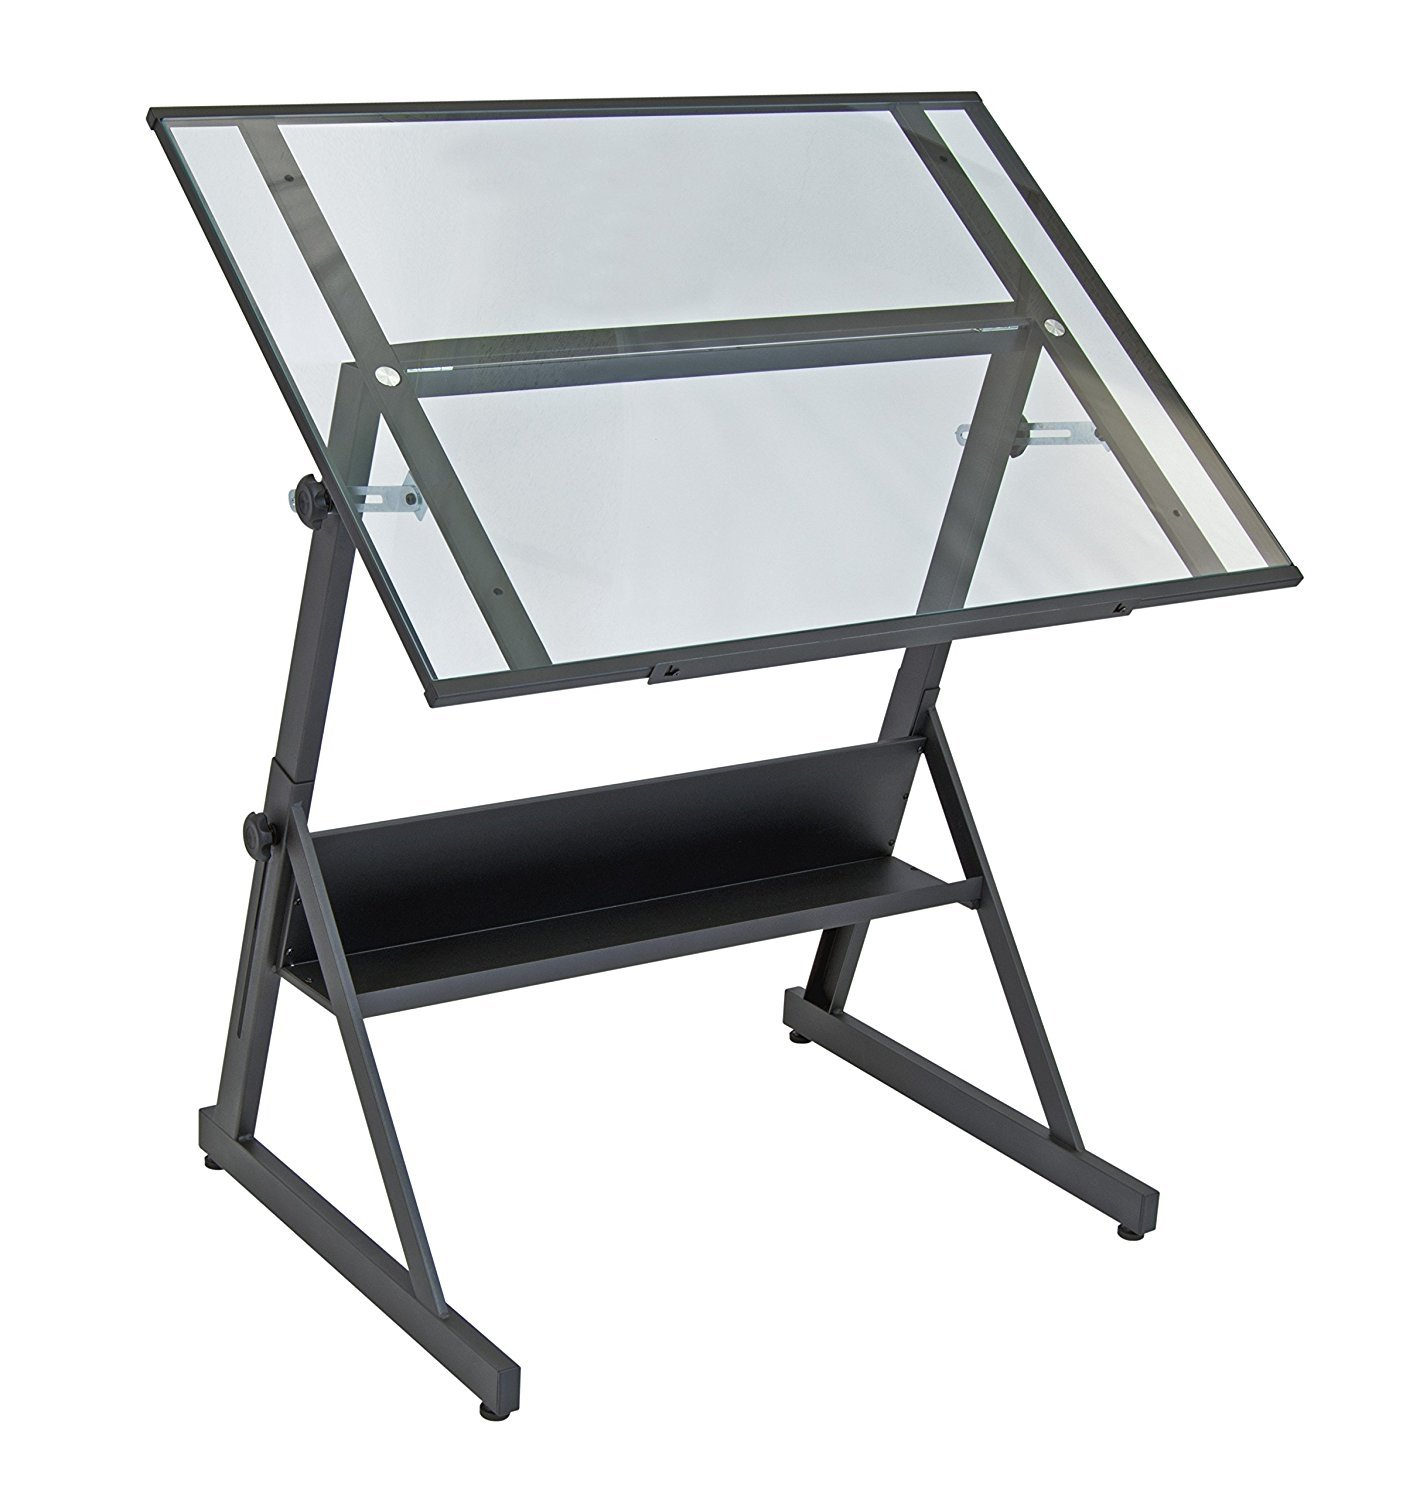 Adjustable Height Drafting Table Studio Designs 13346 Solano Adjustable Height Drafting Table Charcoal Clear Glass